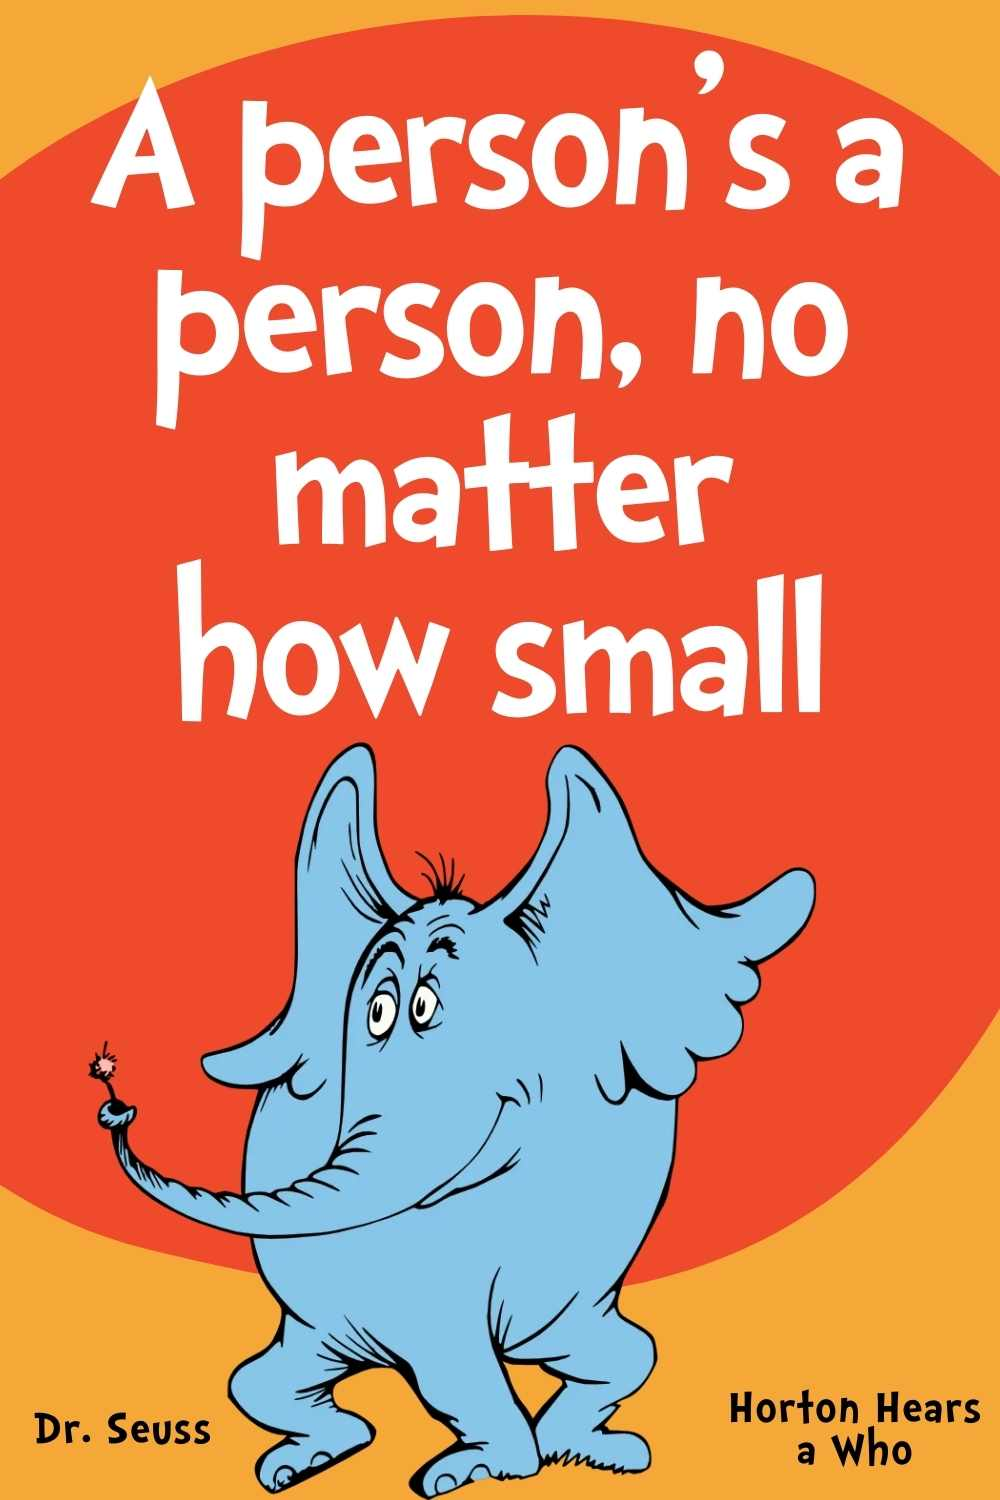 a person's a person no matter how small dr seuss quotes for kids from horton hears a who